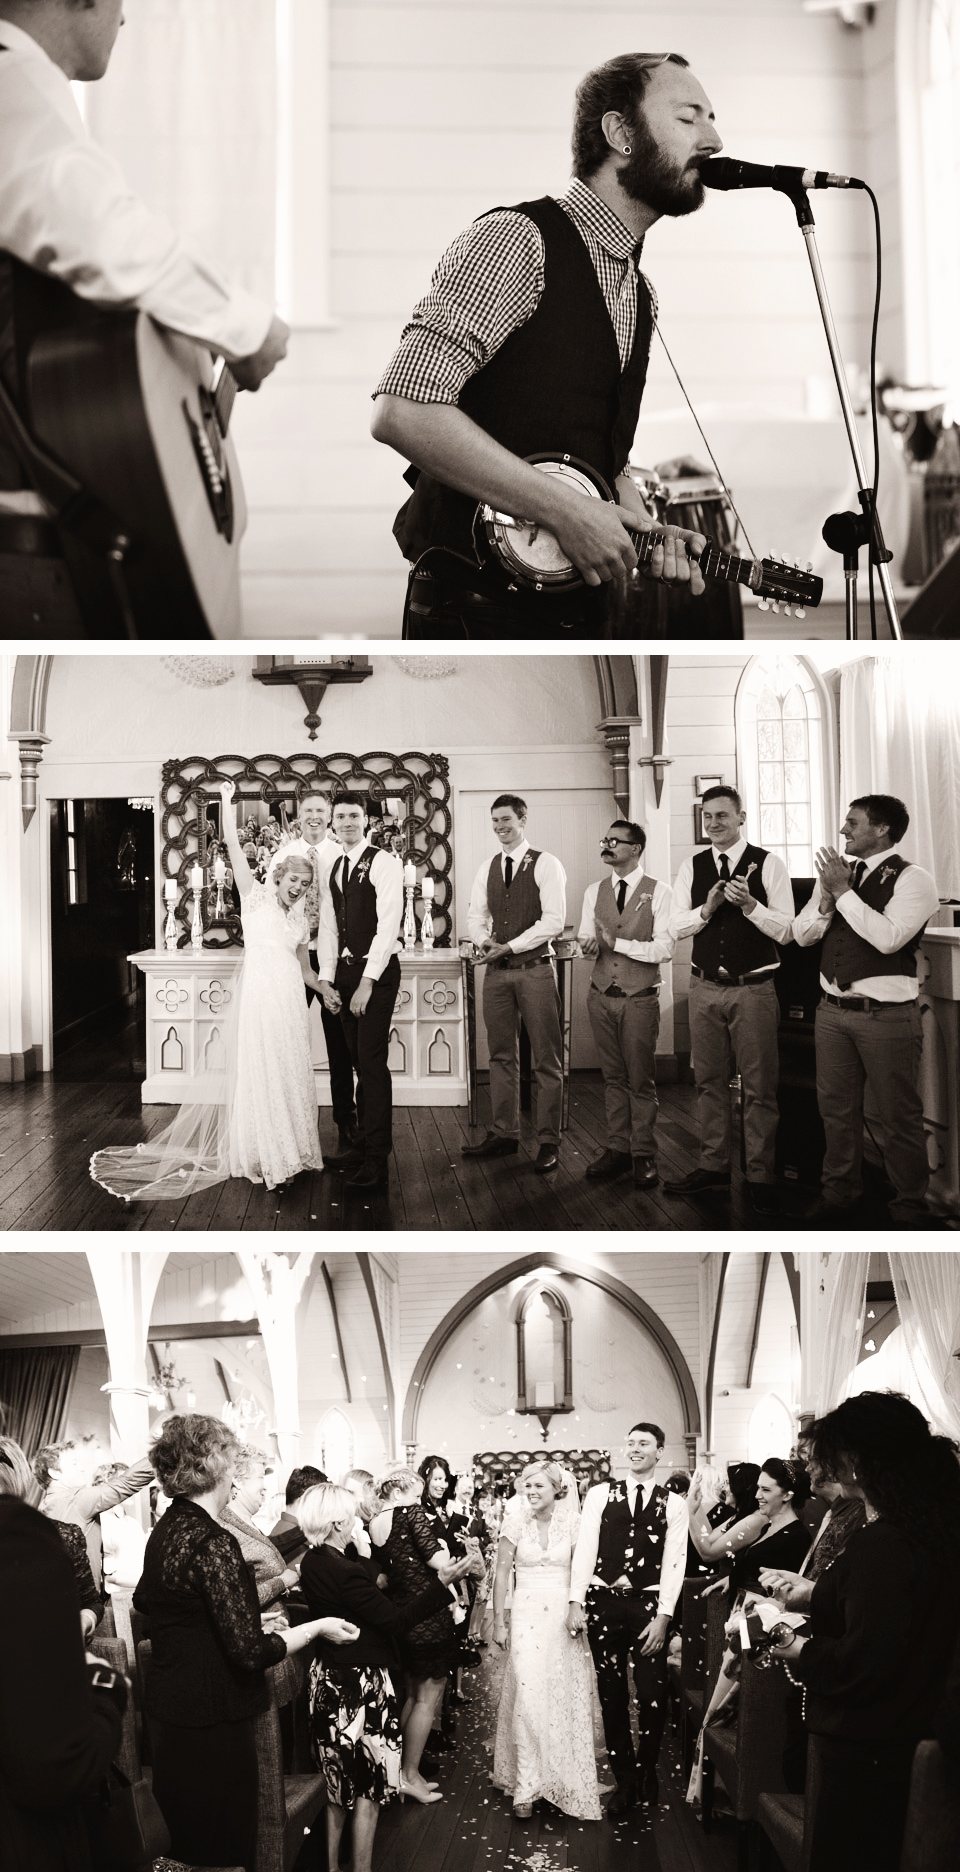 The-Old-Church-wedding-venues-Eva-Bradley (7)